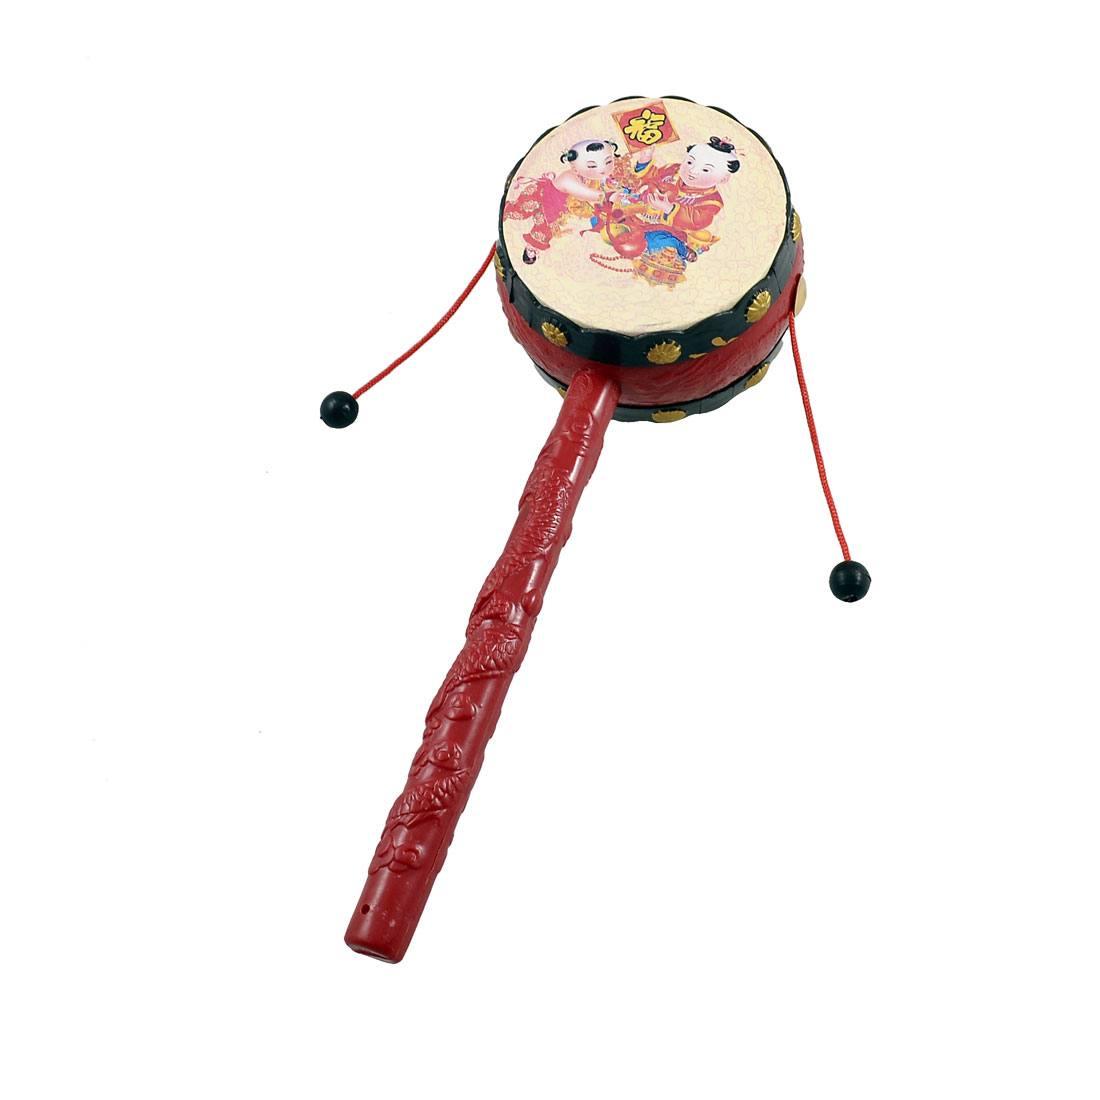 Auspicious Picture Print Dual Side Design Rattle Drum Toy for Baby